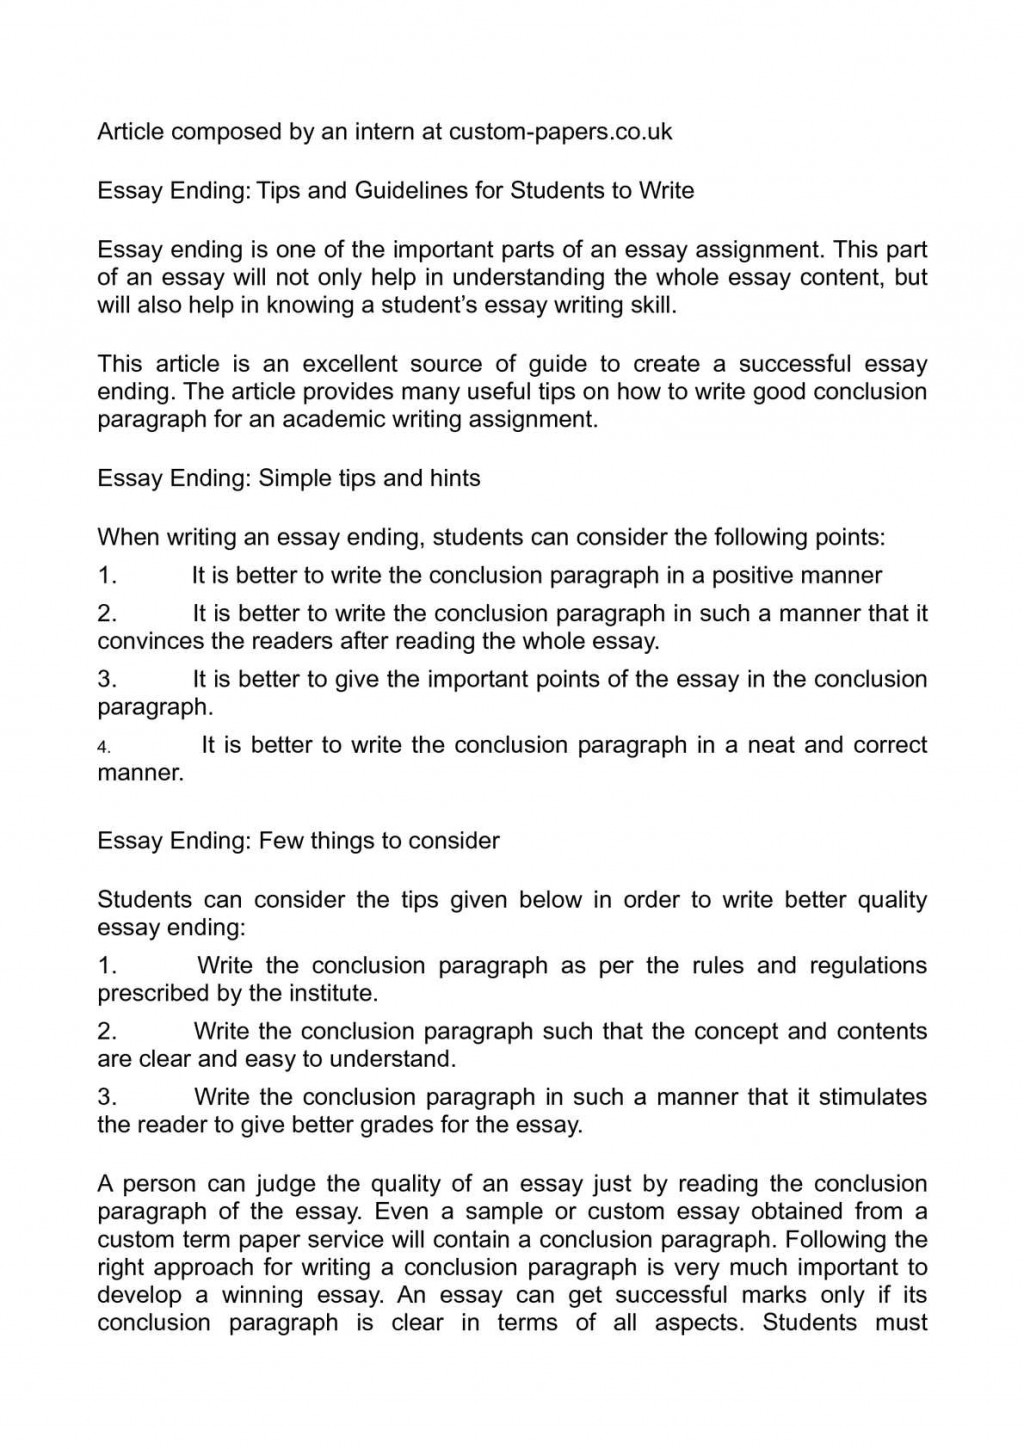 001 Parts Of An Essay Ending Tips And Guidelines For Students To Write Writing Persuasi Pdf Three Persuasive Stupendous Outline Quiz Ppt Large